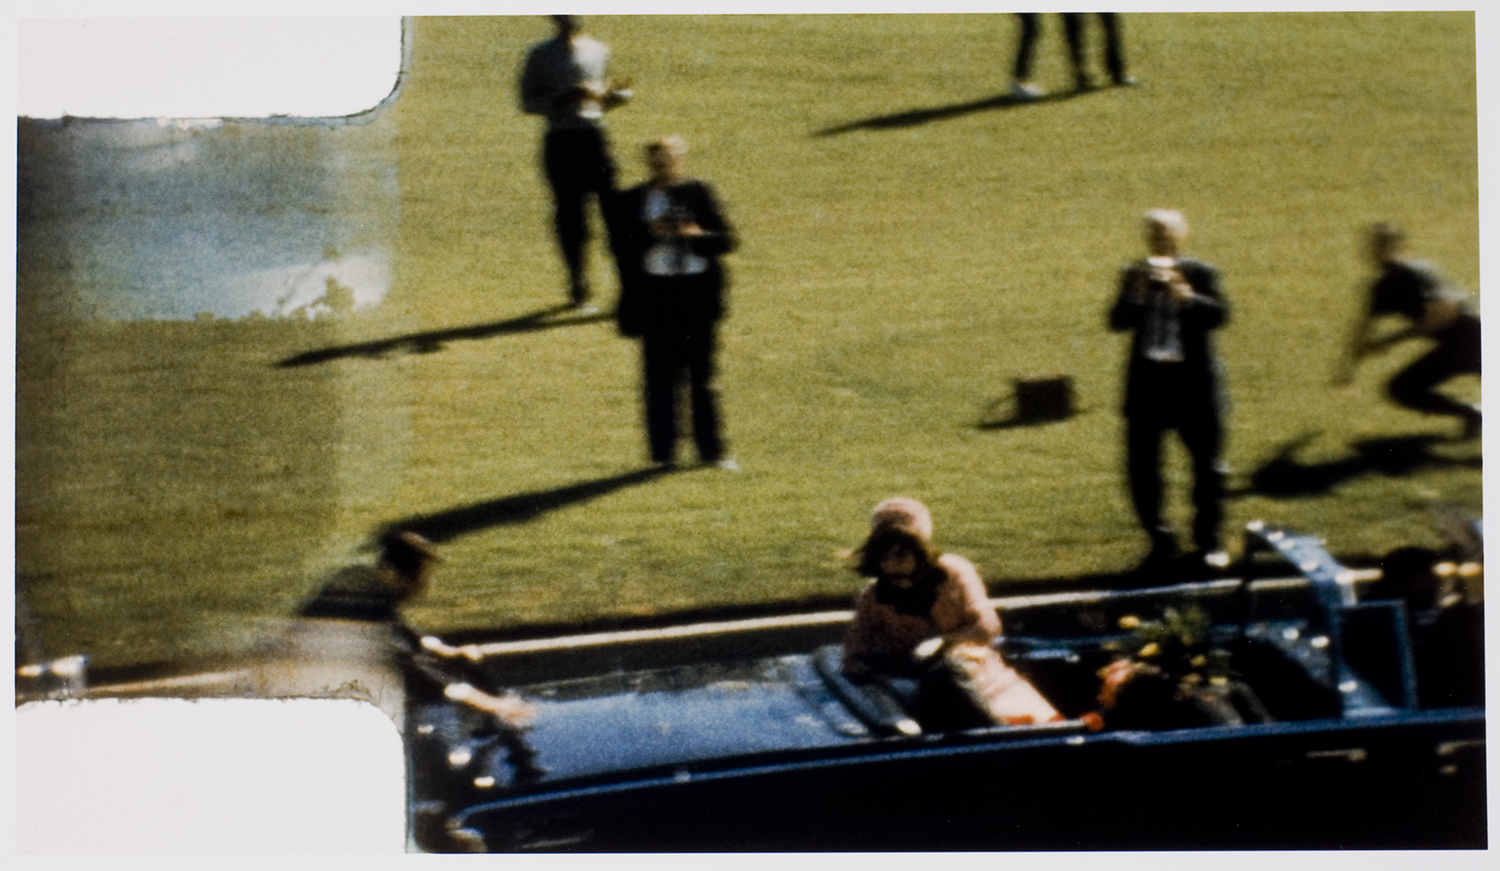 assassination of kennedy On september 24, 1964, a copy of the official warren commission report was  delivered to president lyndon johnson in the oval office its conclusions were, in .